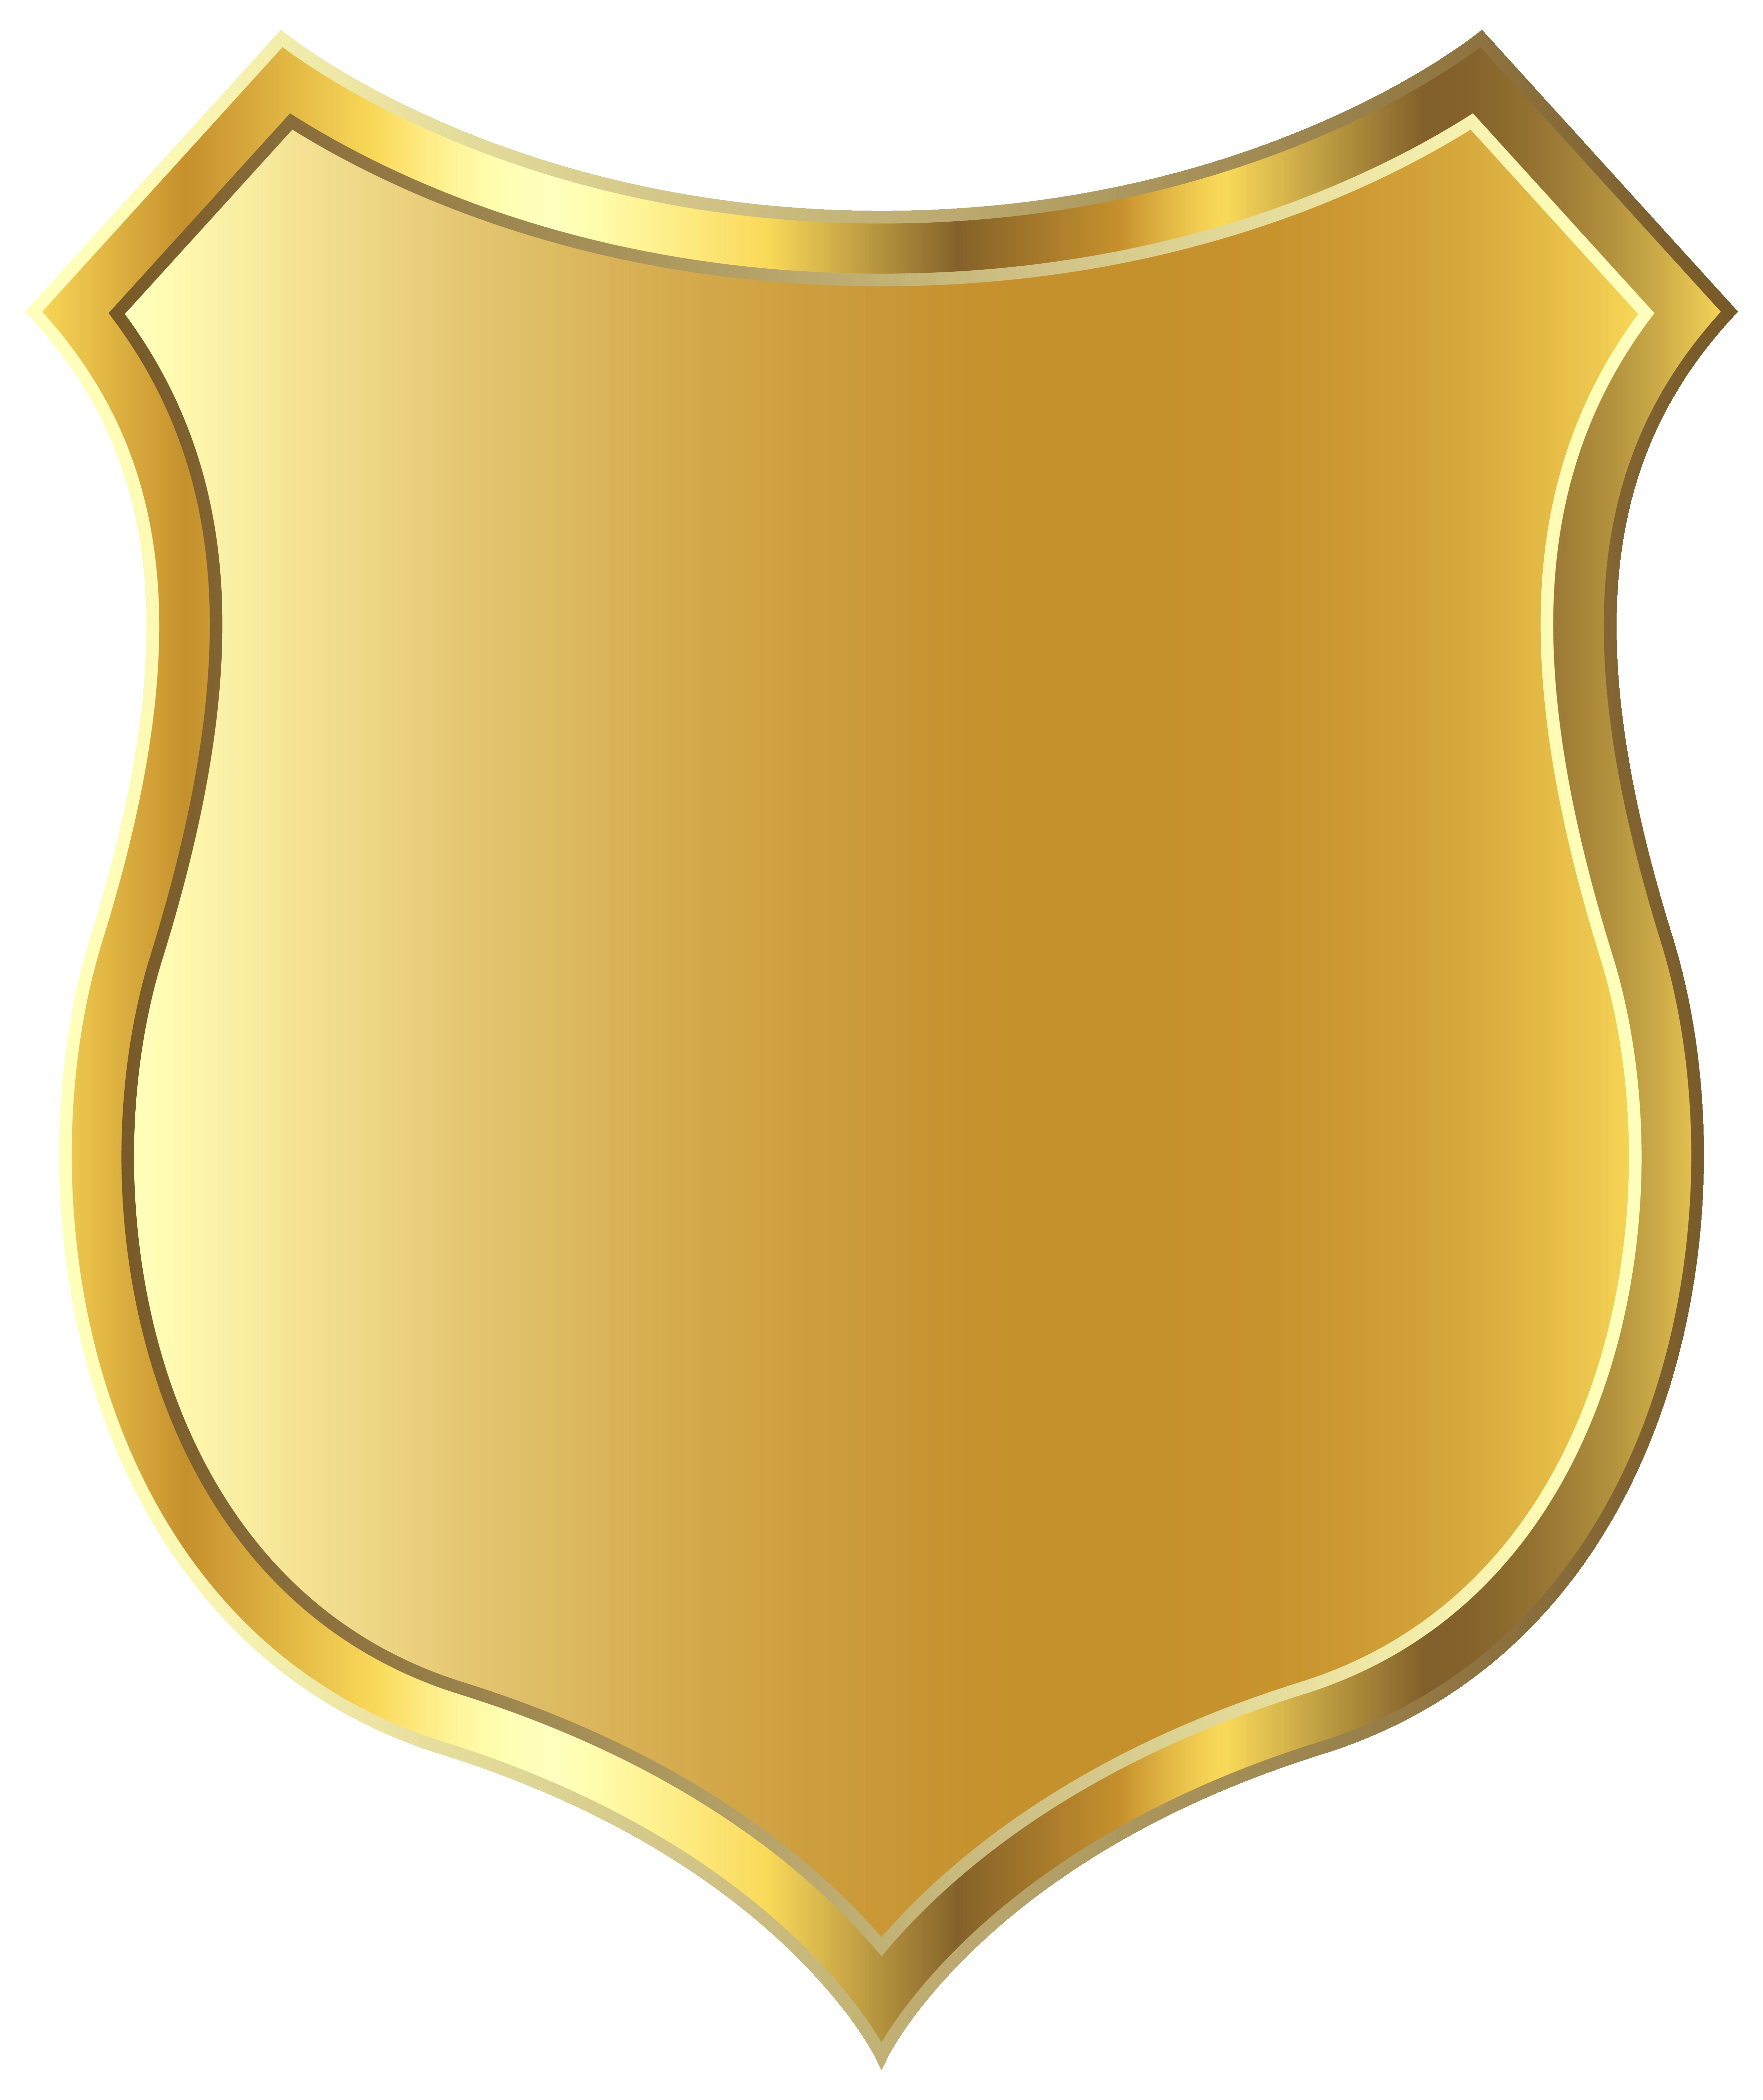 Badge clipart. Resize police rescuedesk me